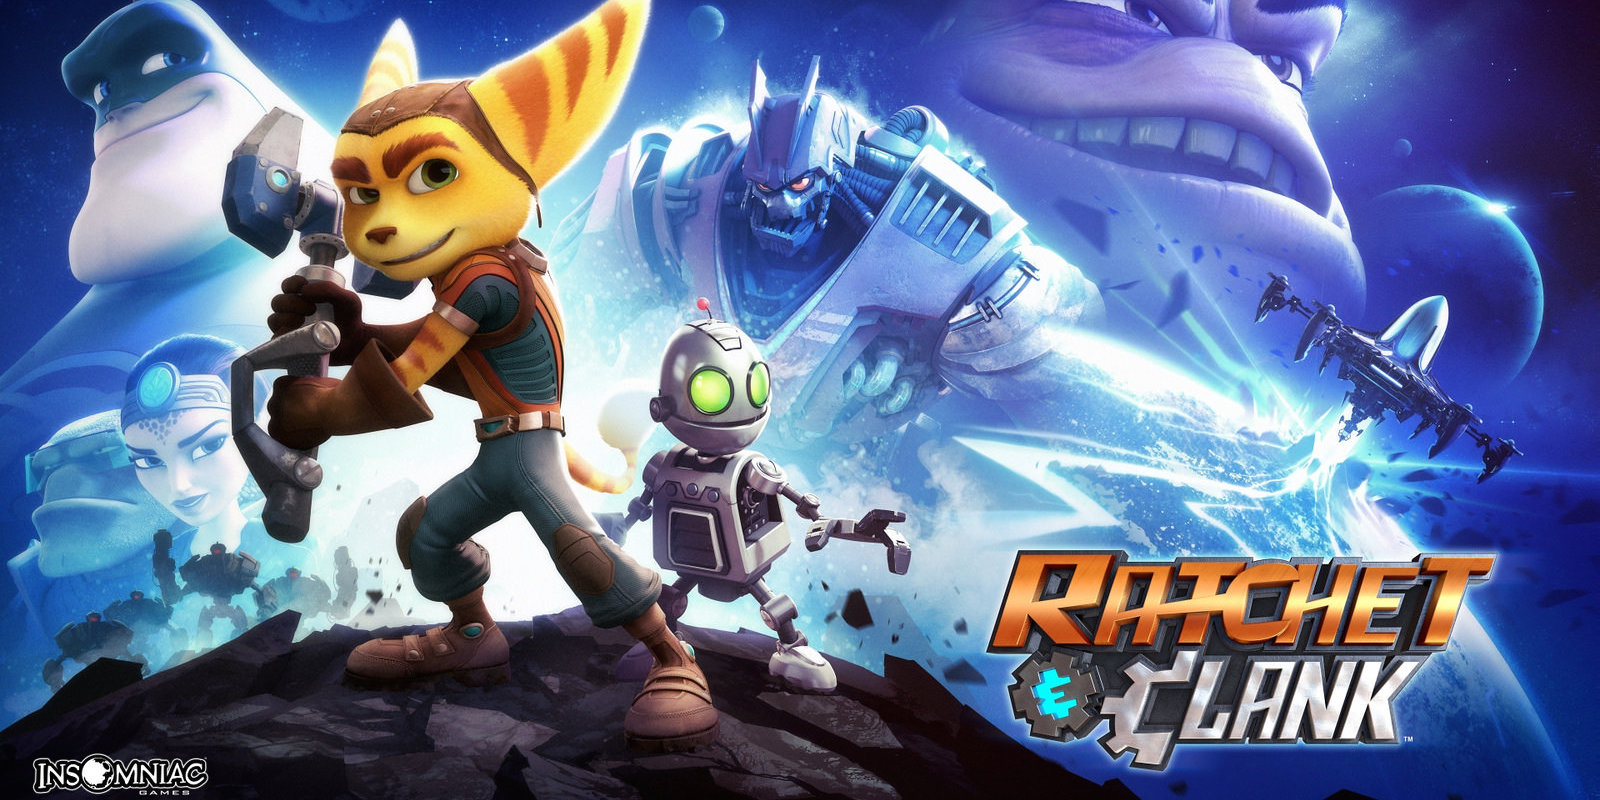 Games/Apps: Ratchet & Clank PS4 $27, Xbox One 4 game bundle